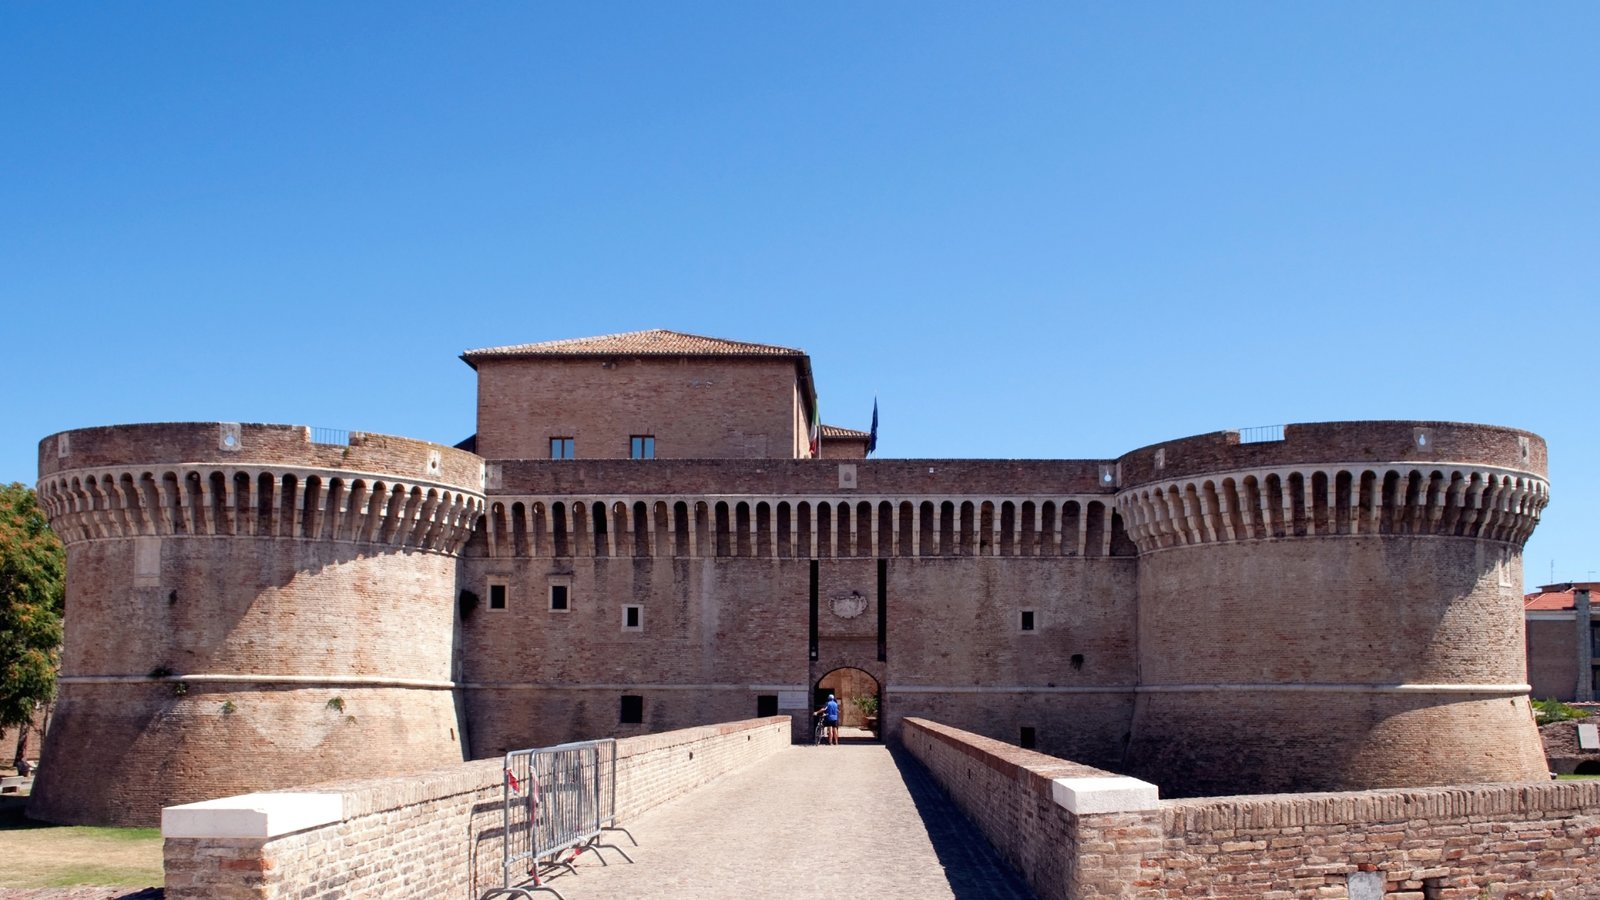 Senigallia which includes heritage elements